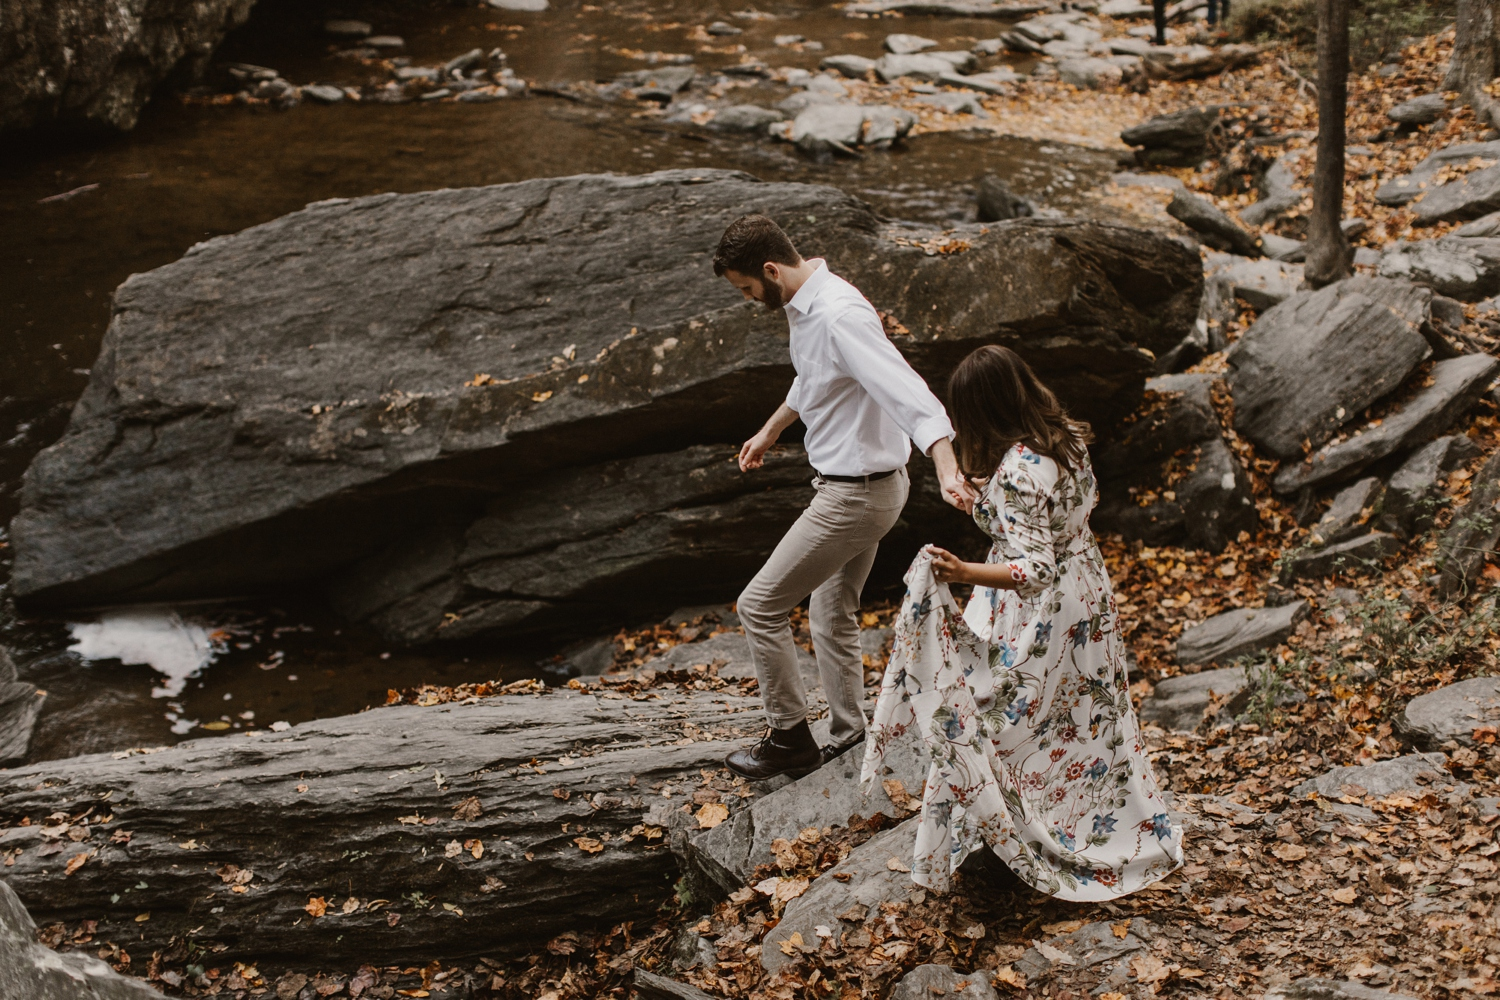 sundas-and-scotts-engagement-88_baltimore-washington-d-c-waterfall-kilgore-engagement-session-maxi-dress-earthy-maryland-wedding-photographer-kate-ann-photography-phot